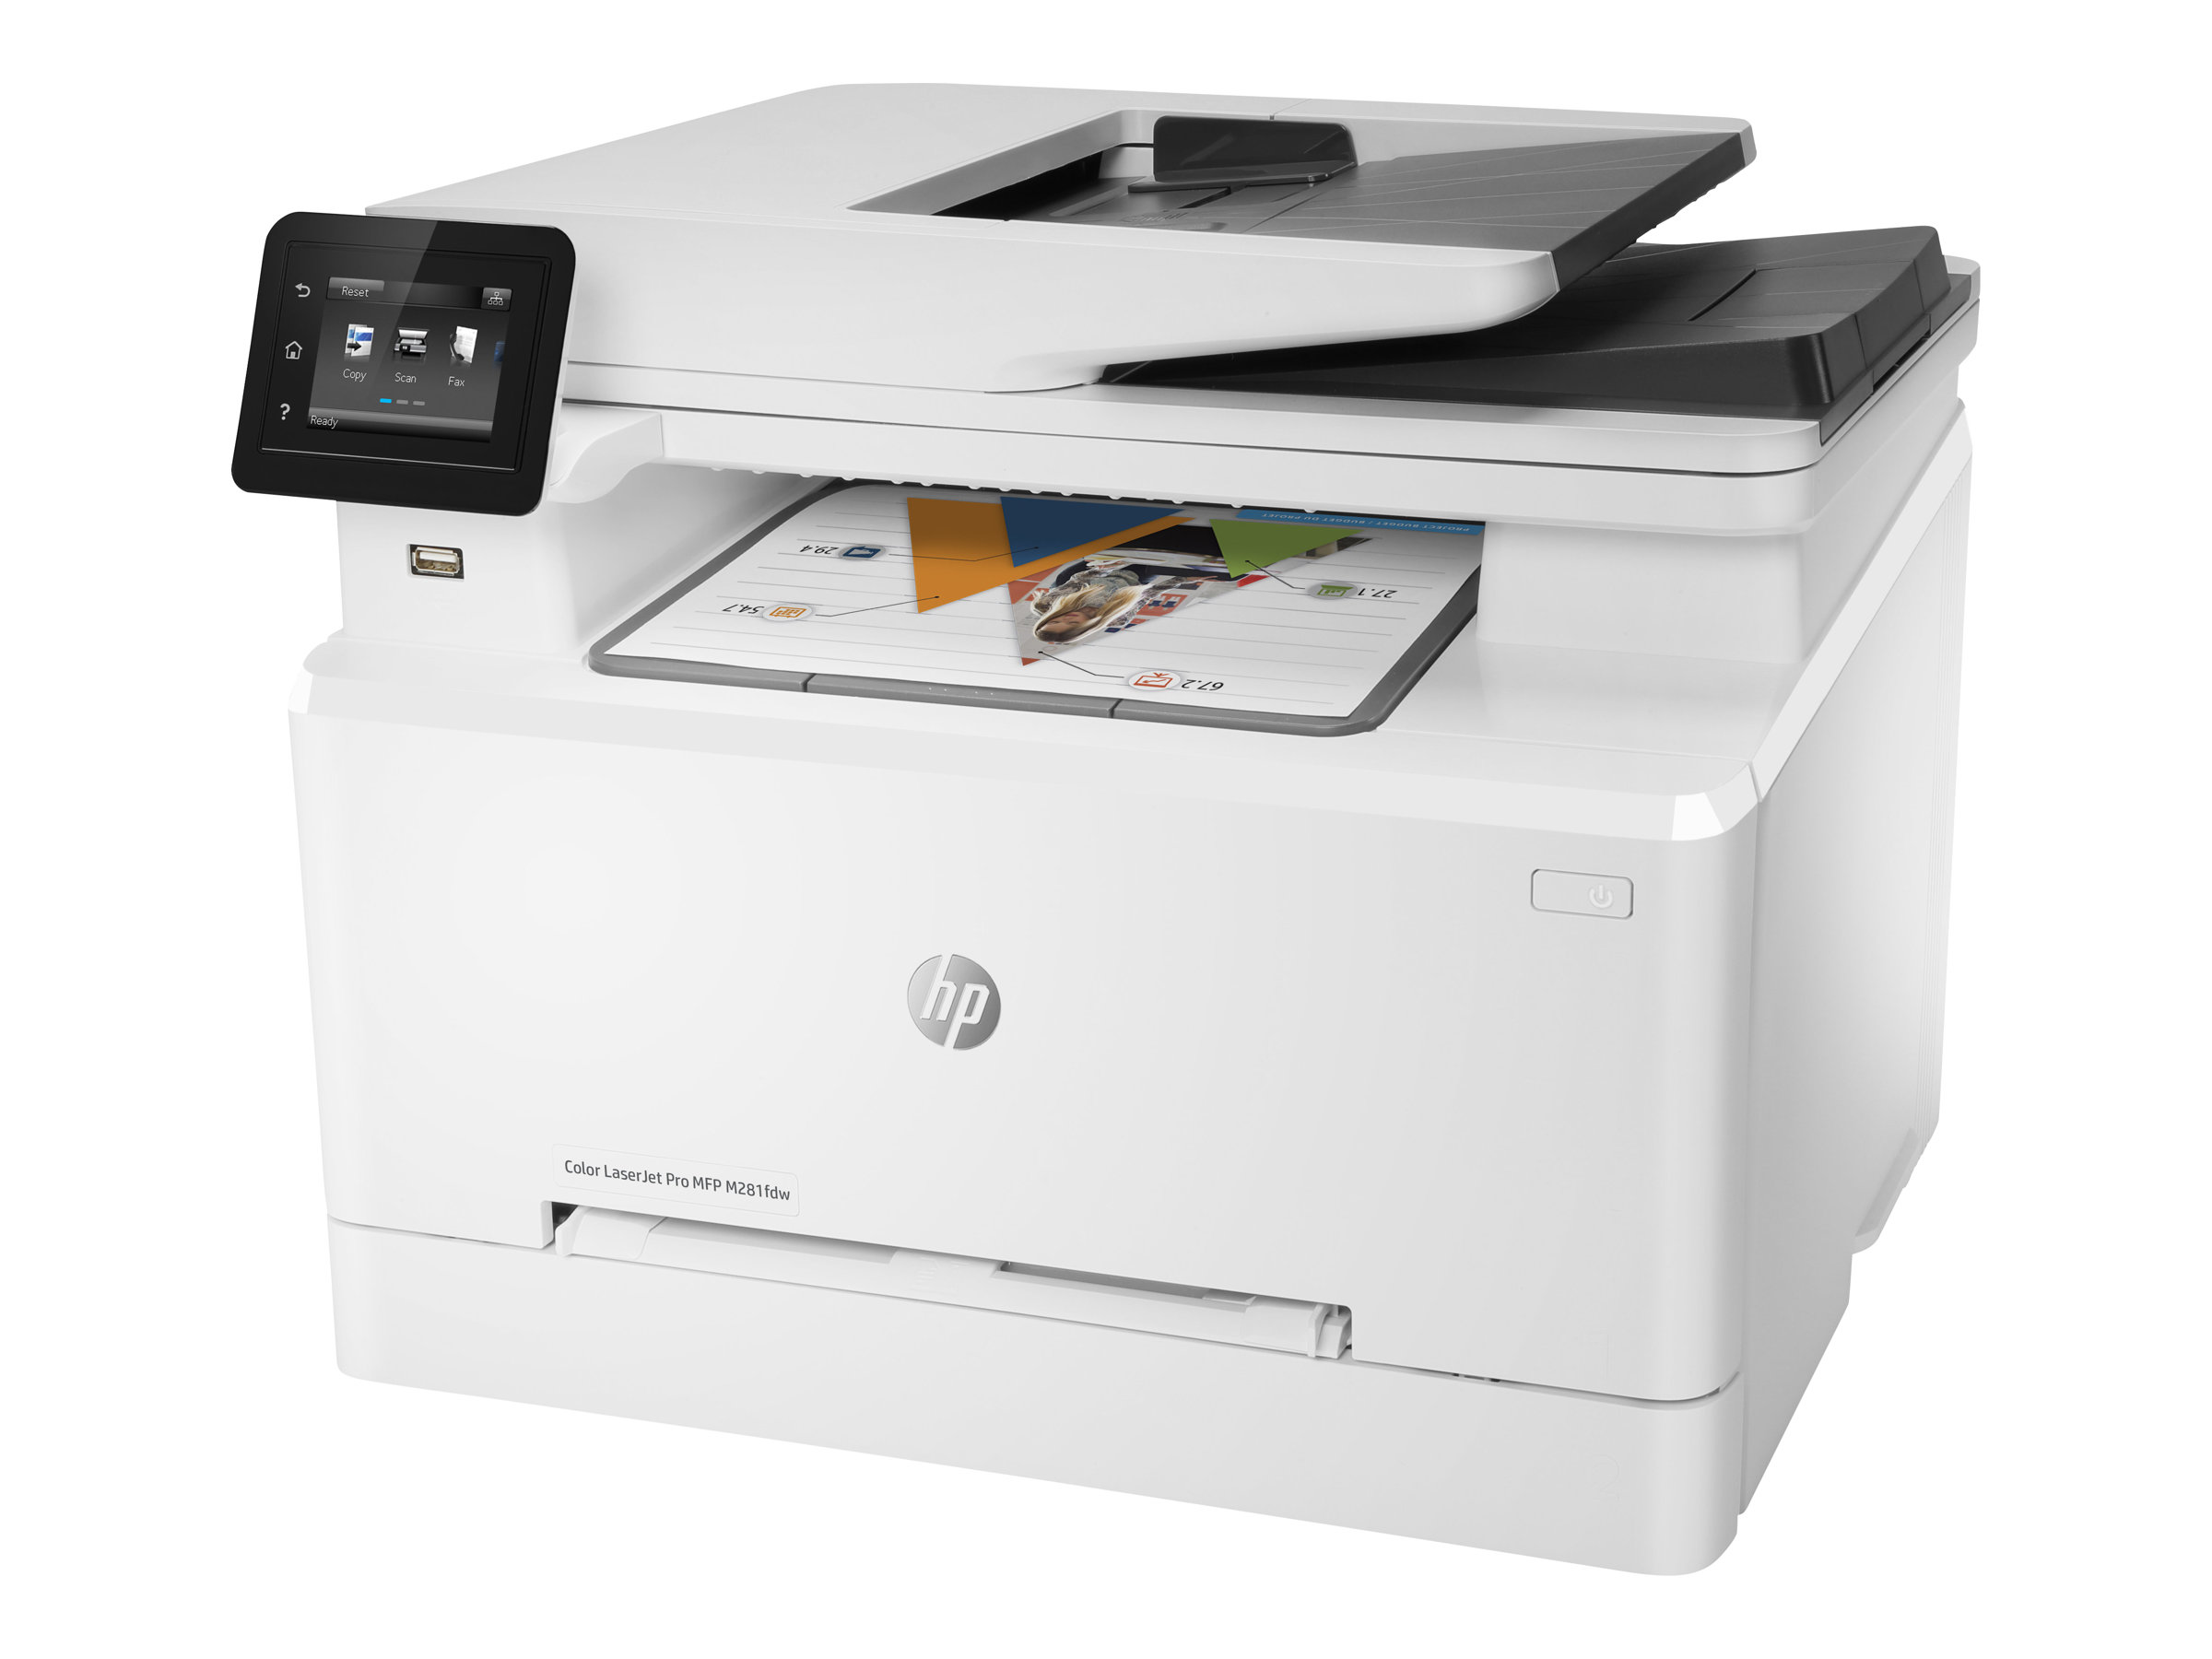 HP Color LaserJet Pro MFP M281fdw - imprimante multifonctions - couleur - laser